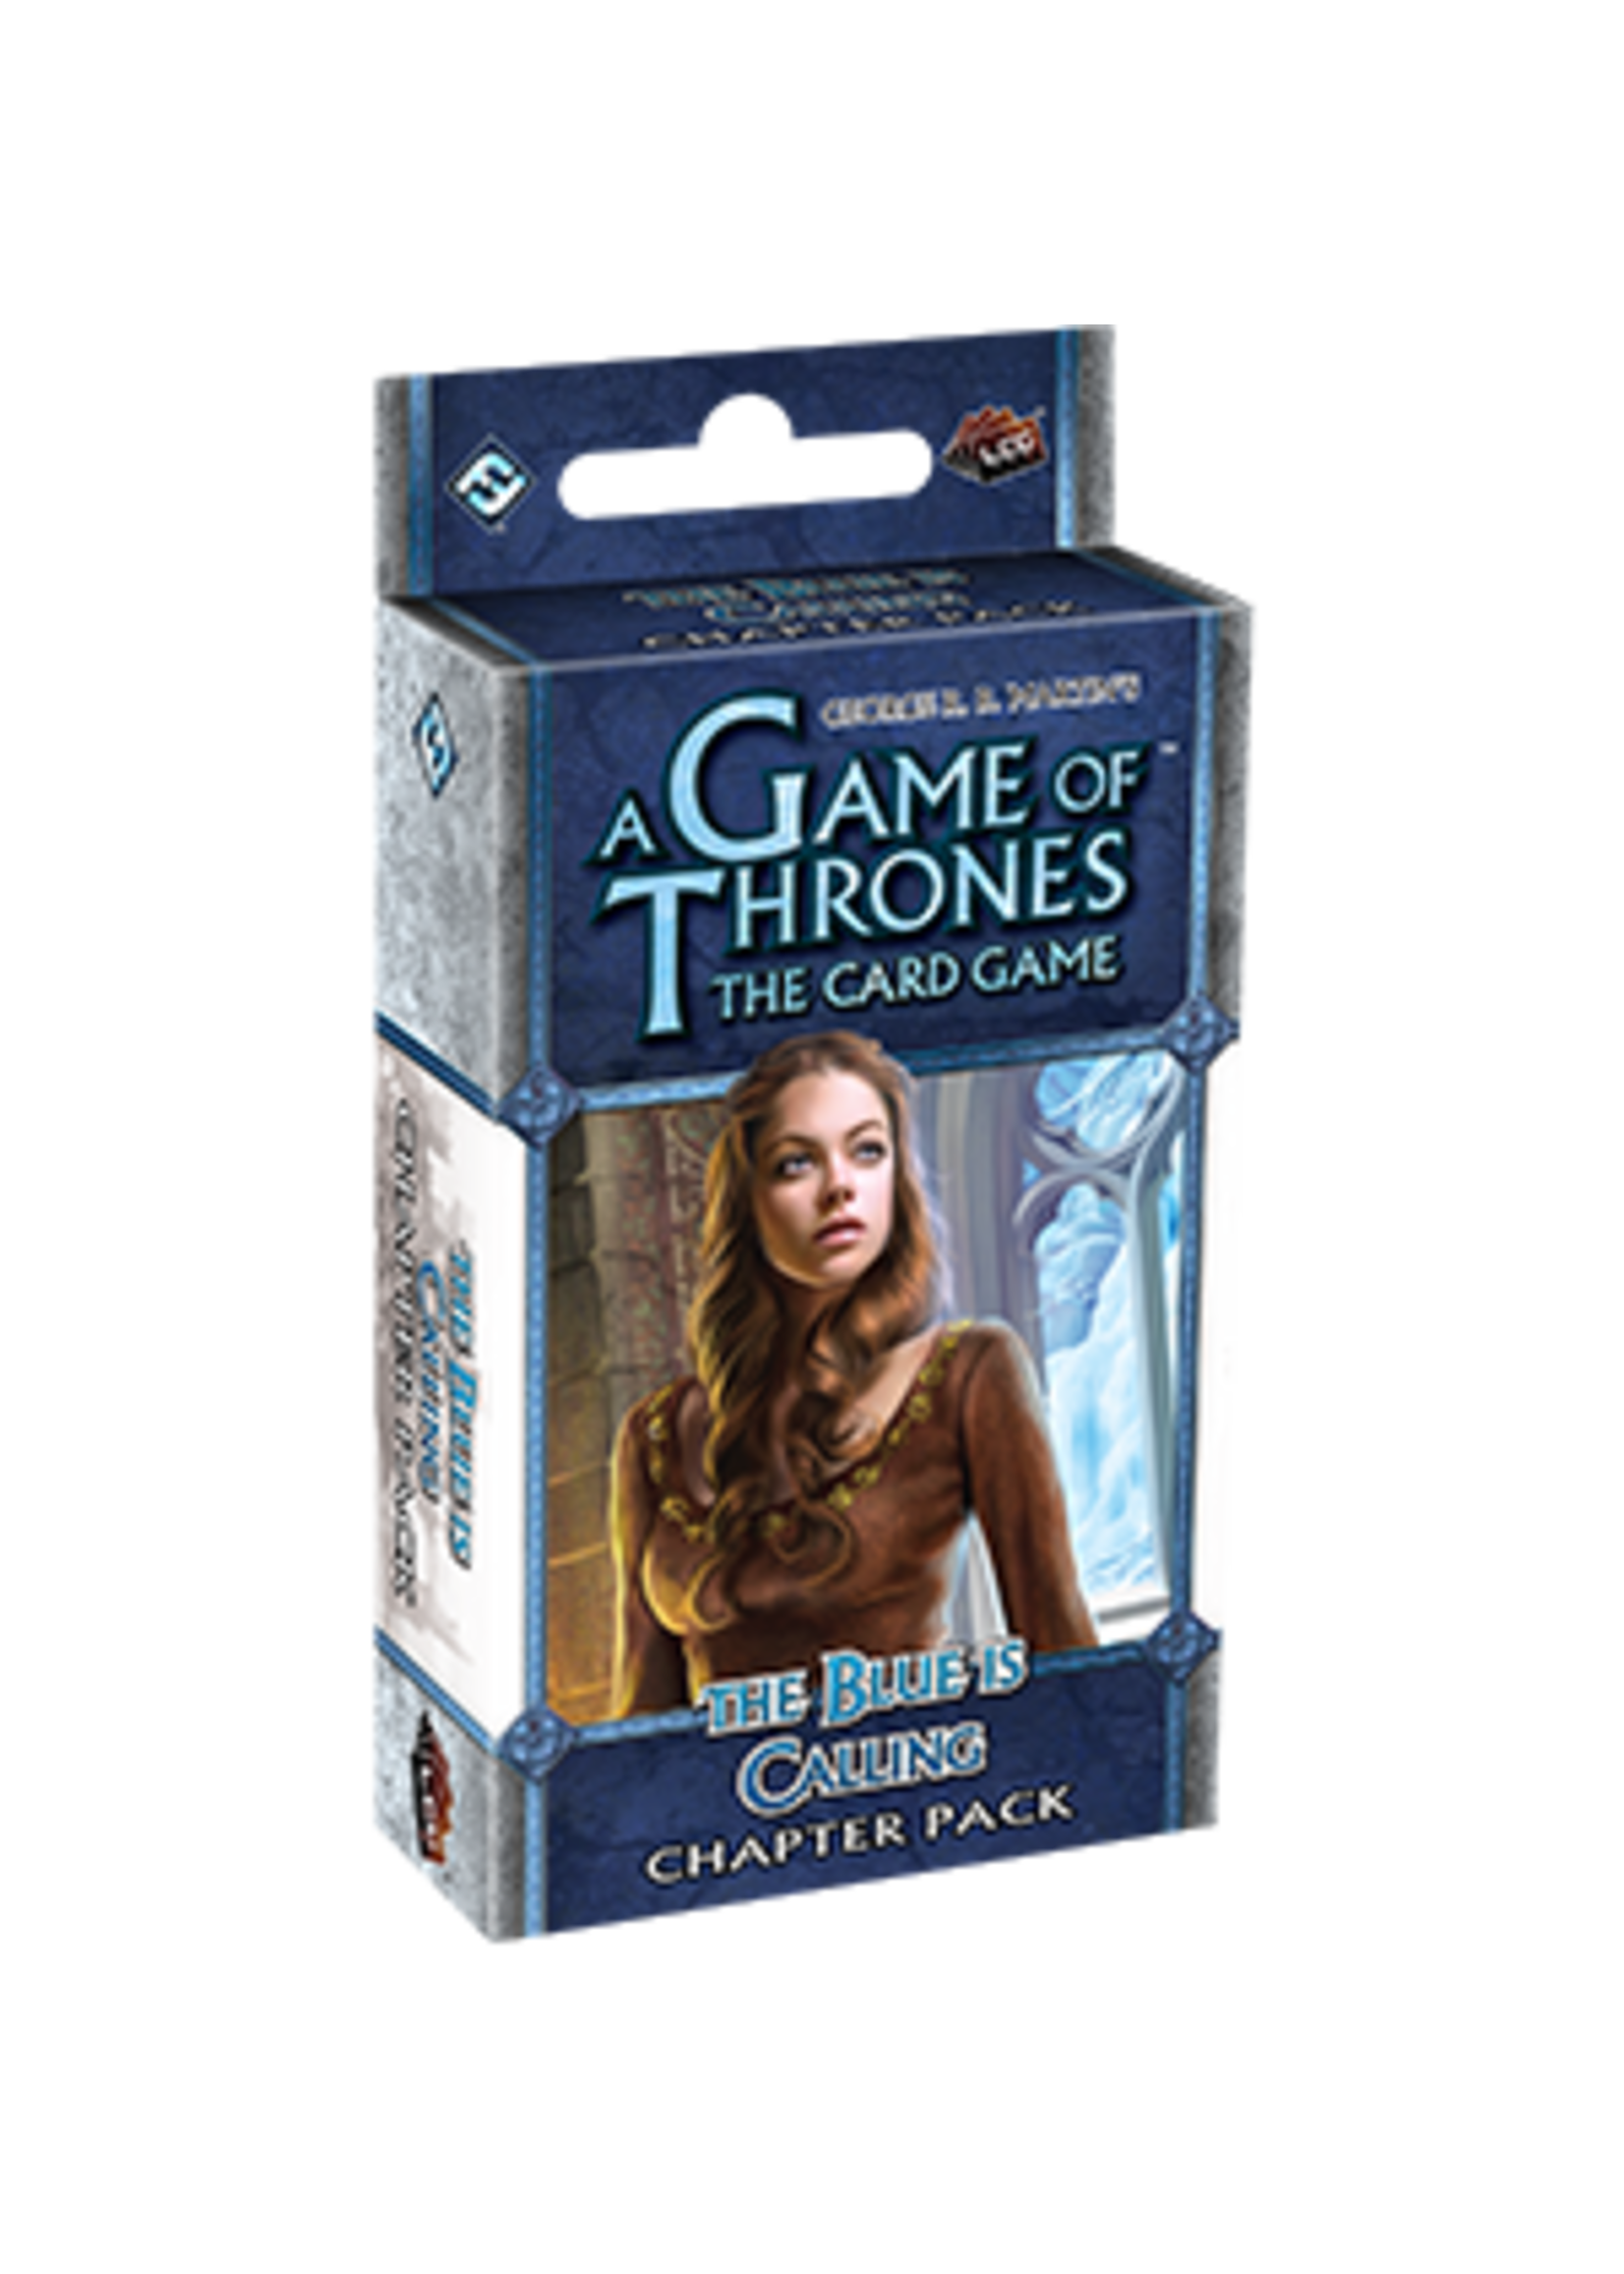 A Game of Thrones LCG: The Blue is Calling Chapter Pack